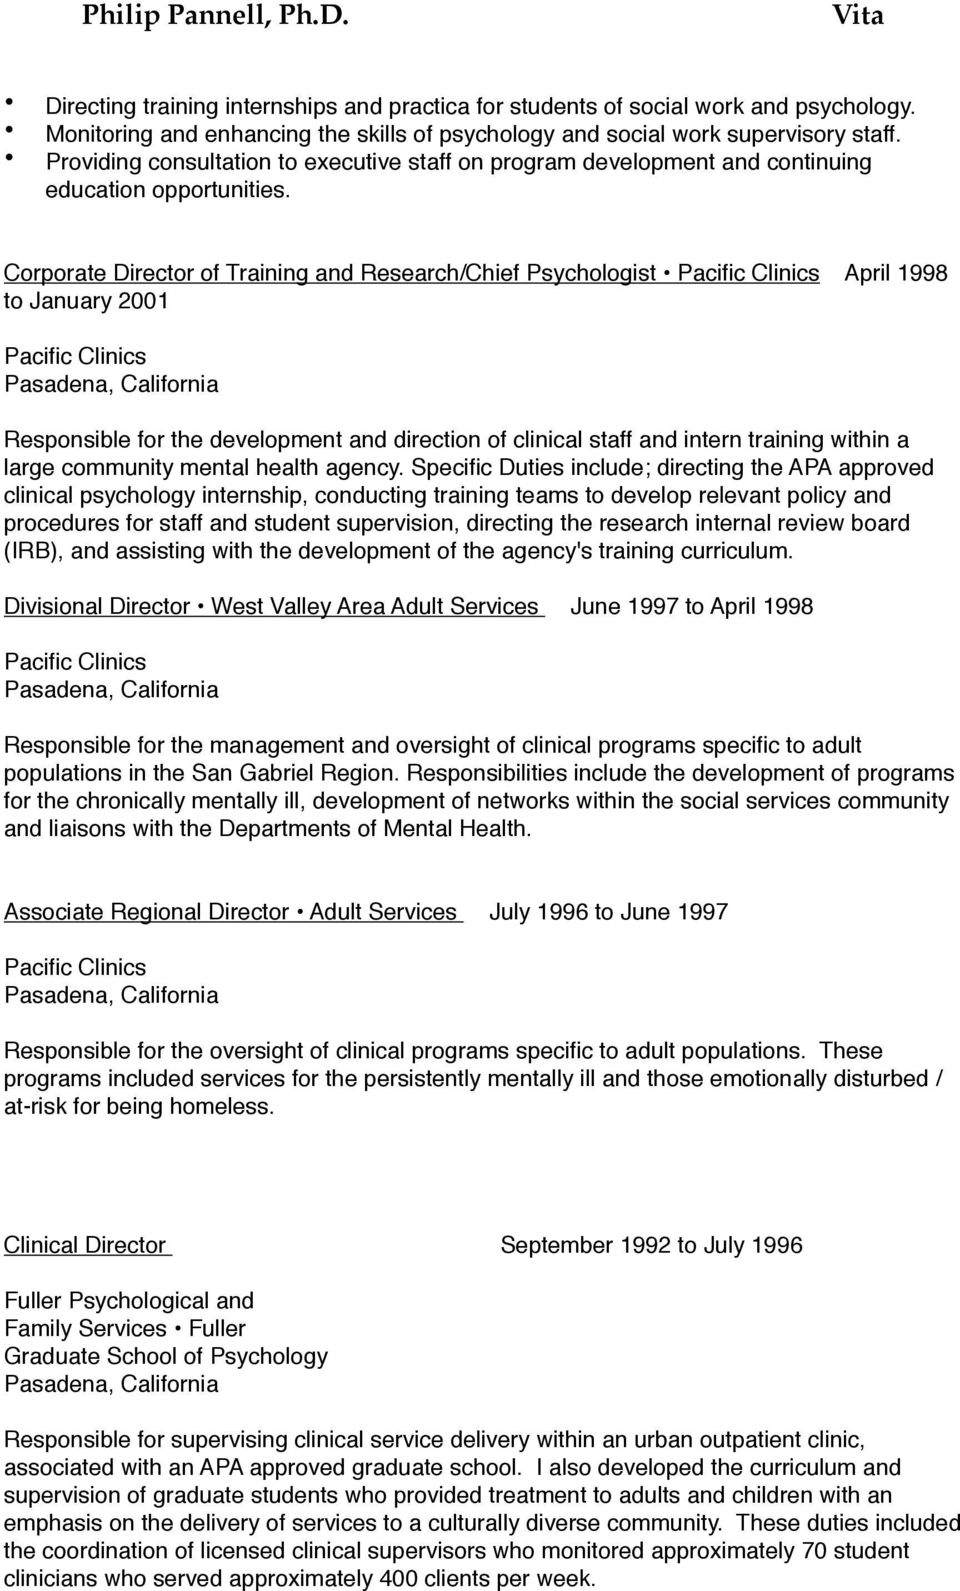 Corporate Director of Training and Research/Chief Psychologist April 1998 to January 2001 Responsible for the development and direction of clinical staff and intern training within a large community